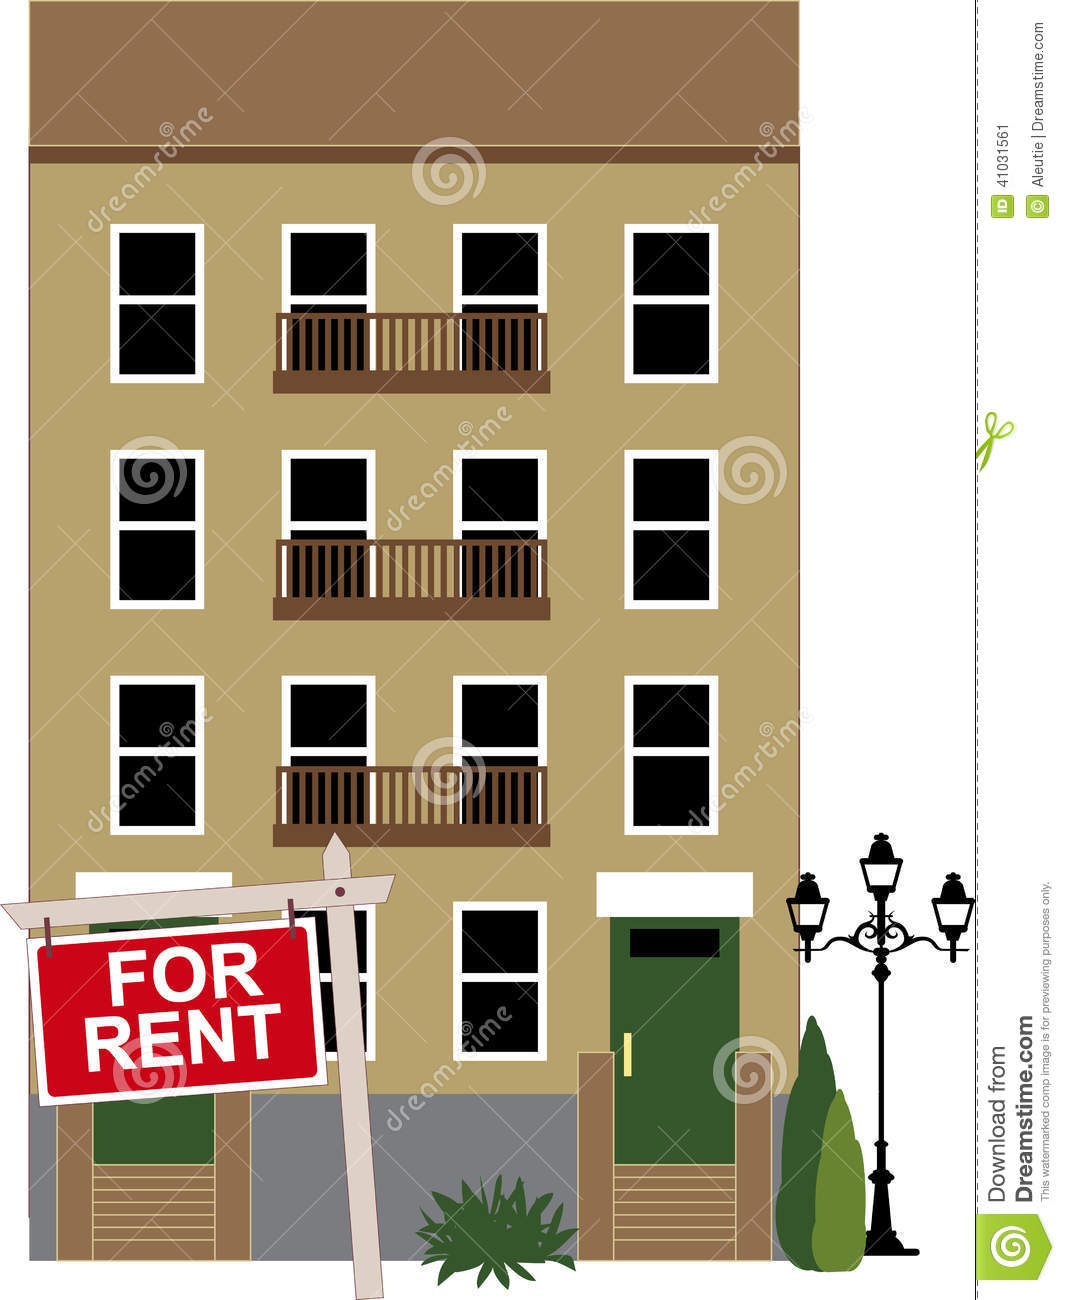 Apartmet For Rent: Apartment For Rent Stock Vector